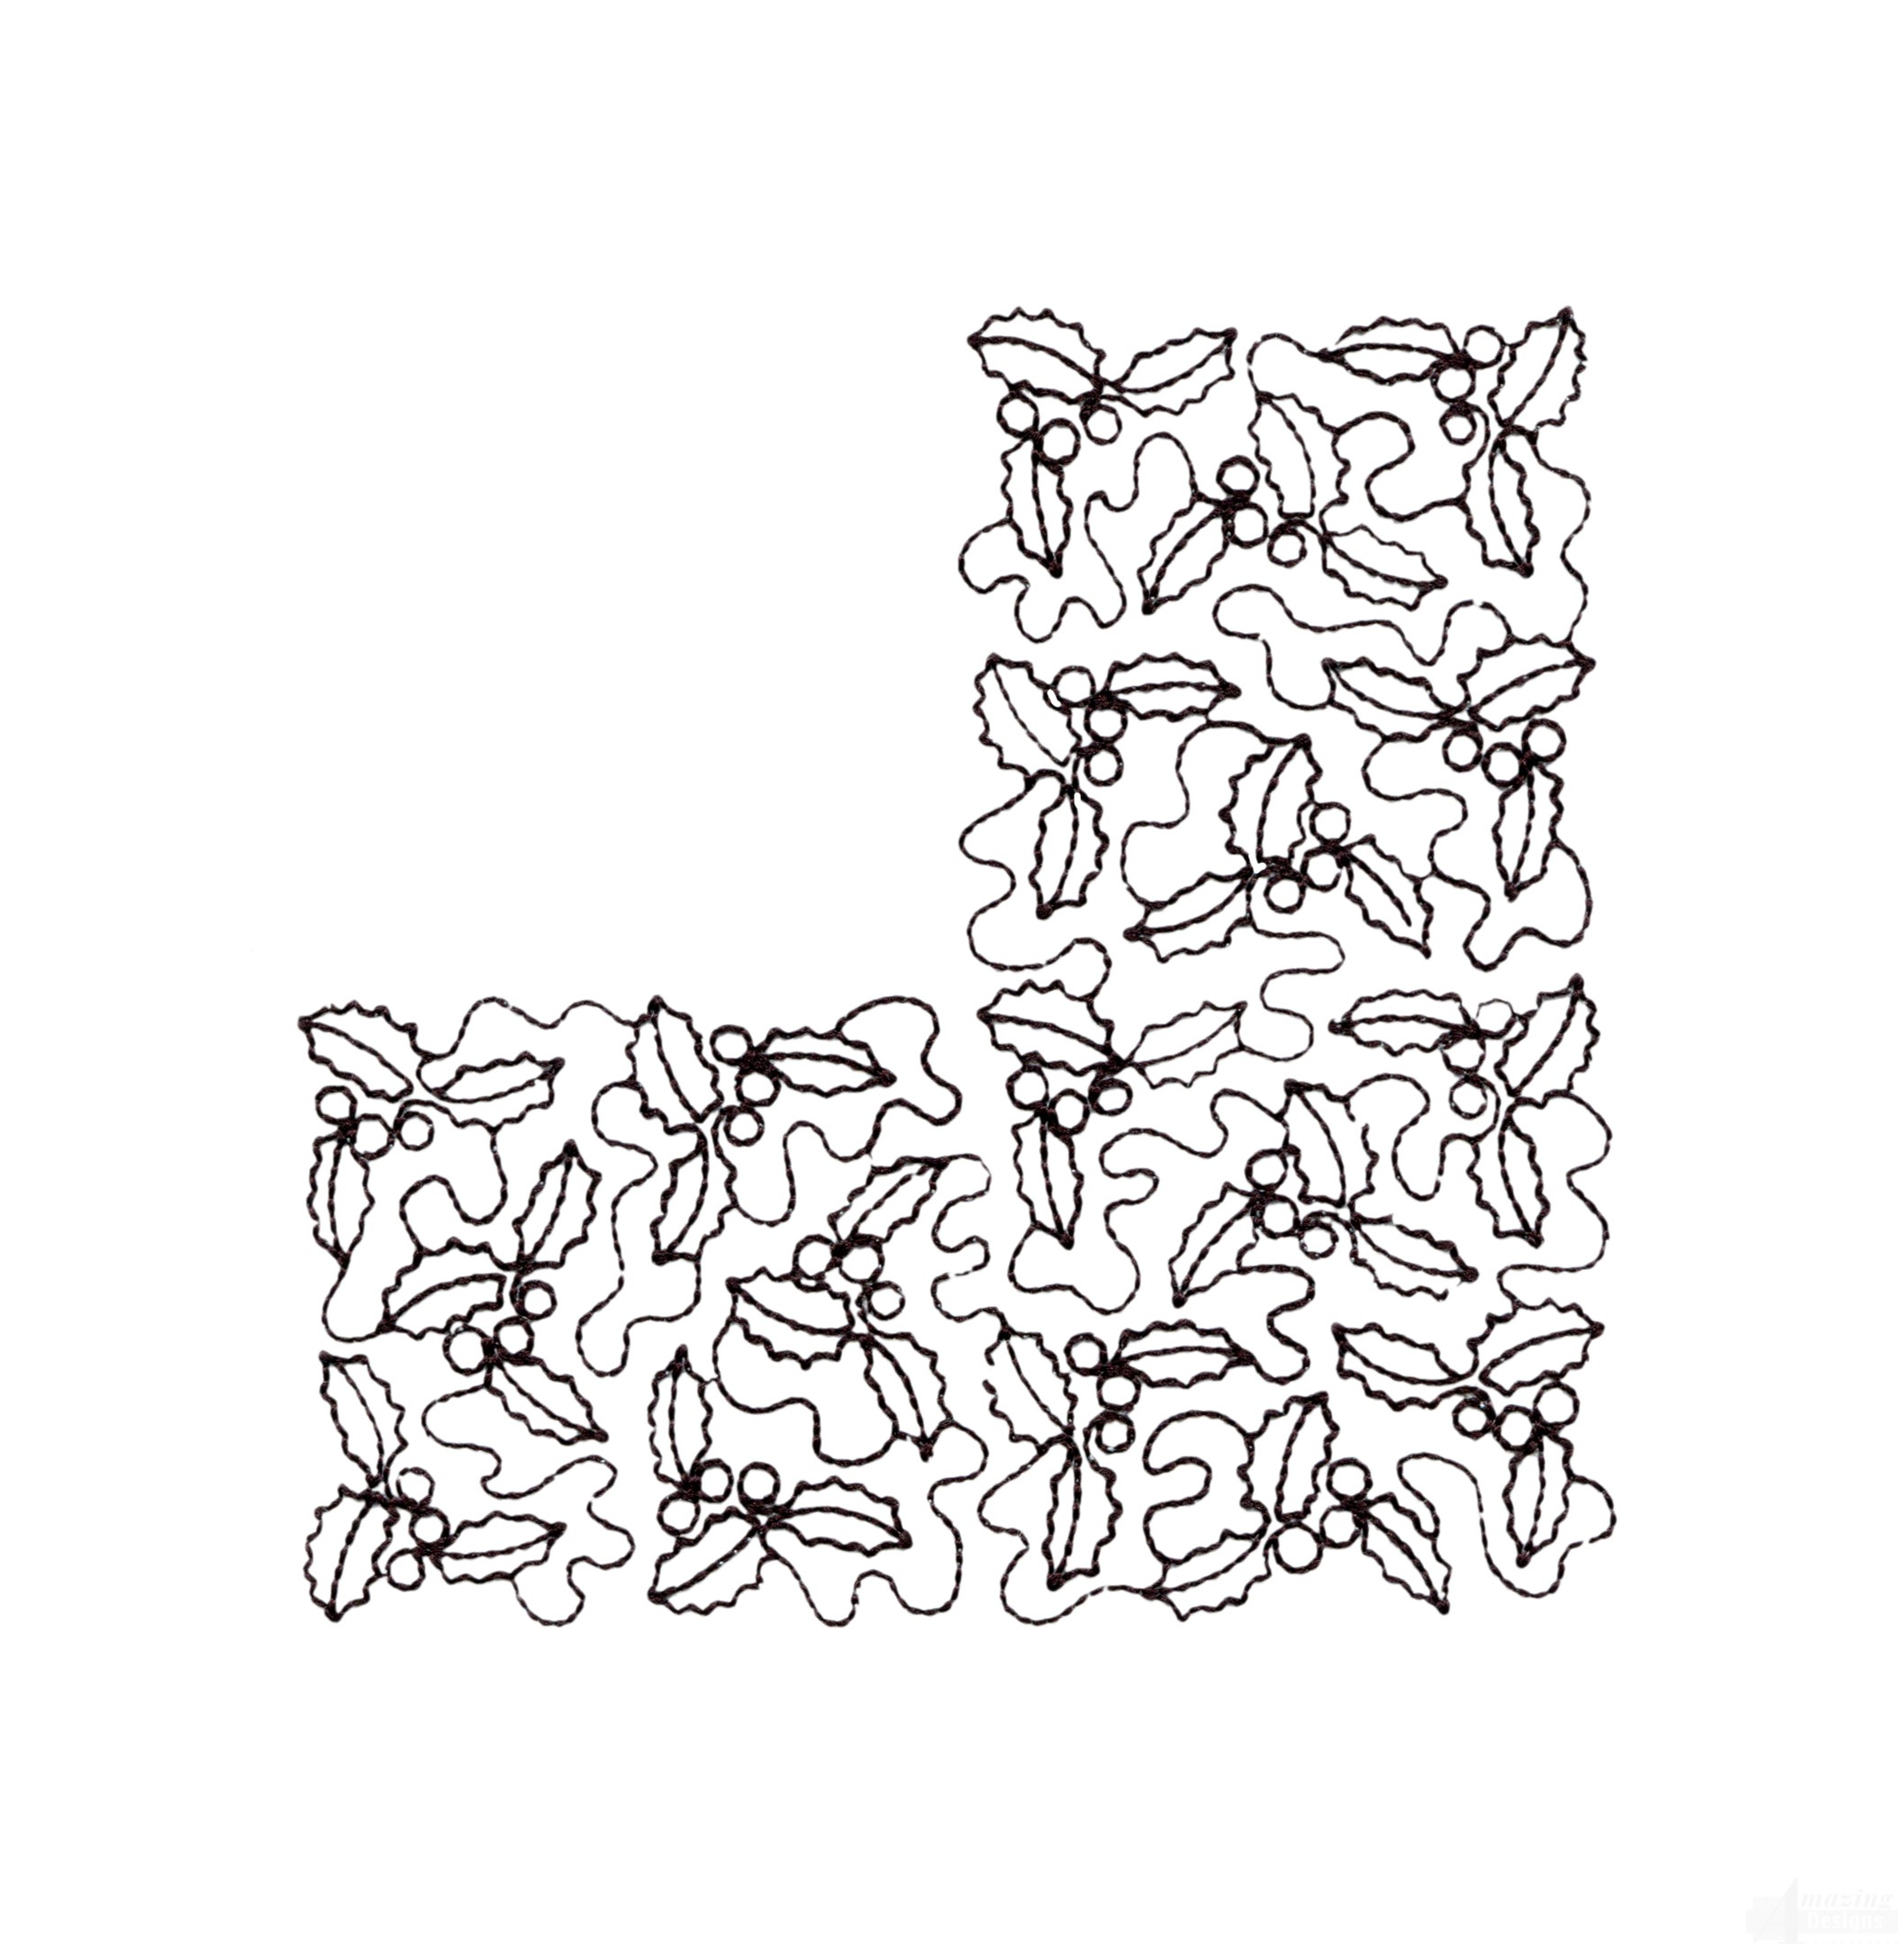 Swncqo337 Quilting Outline Embroidery Design